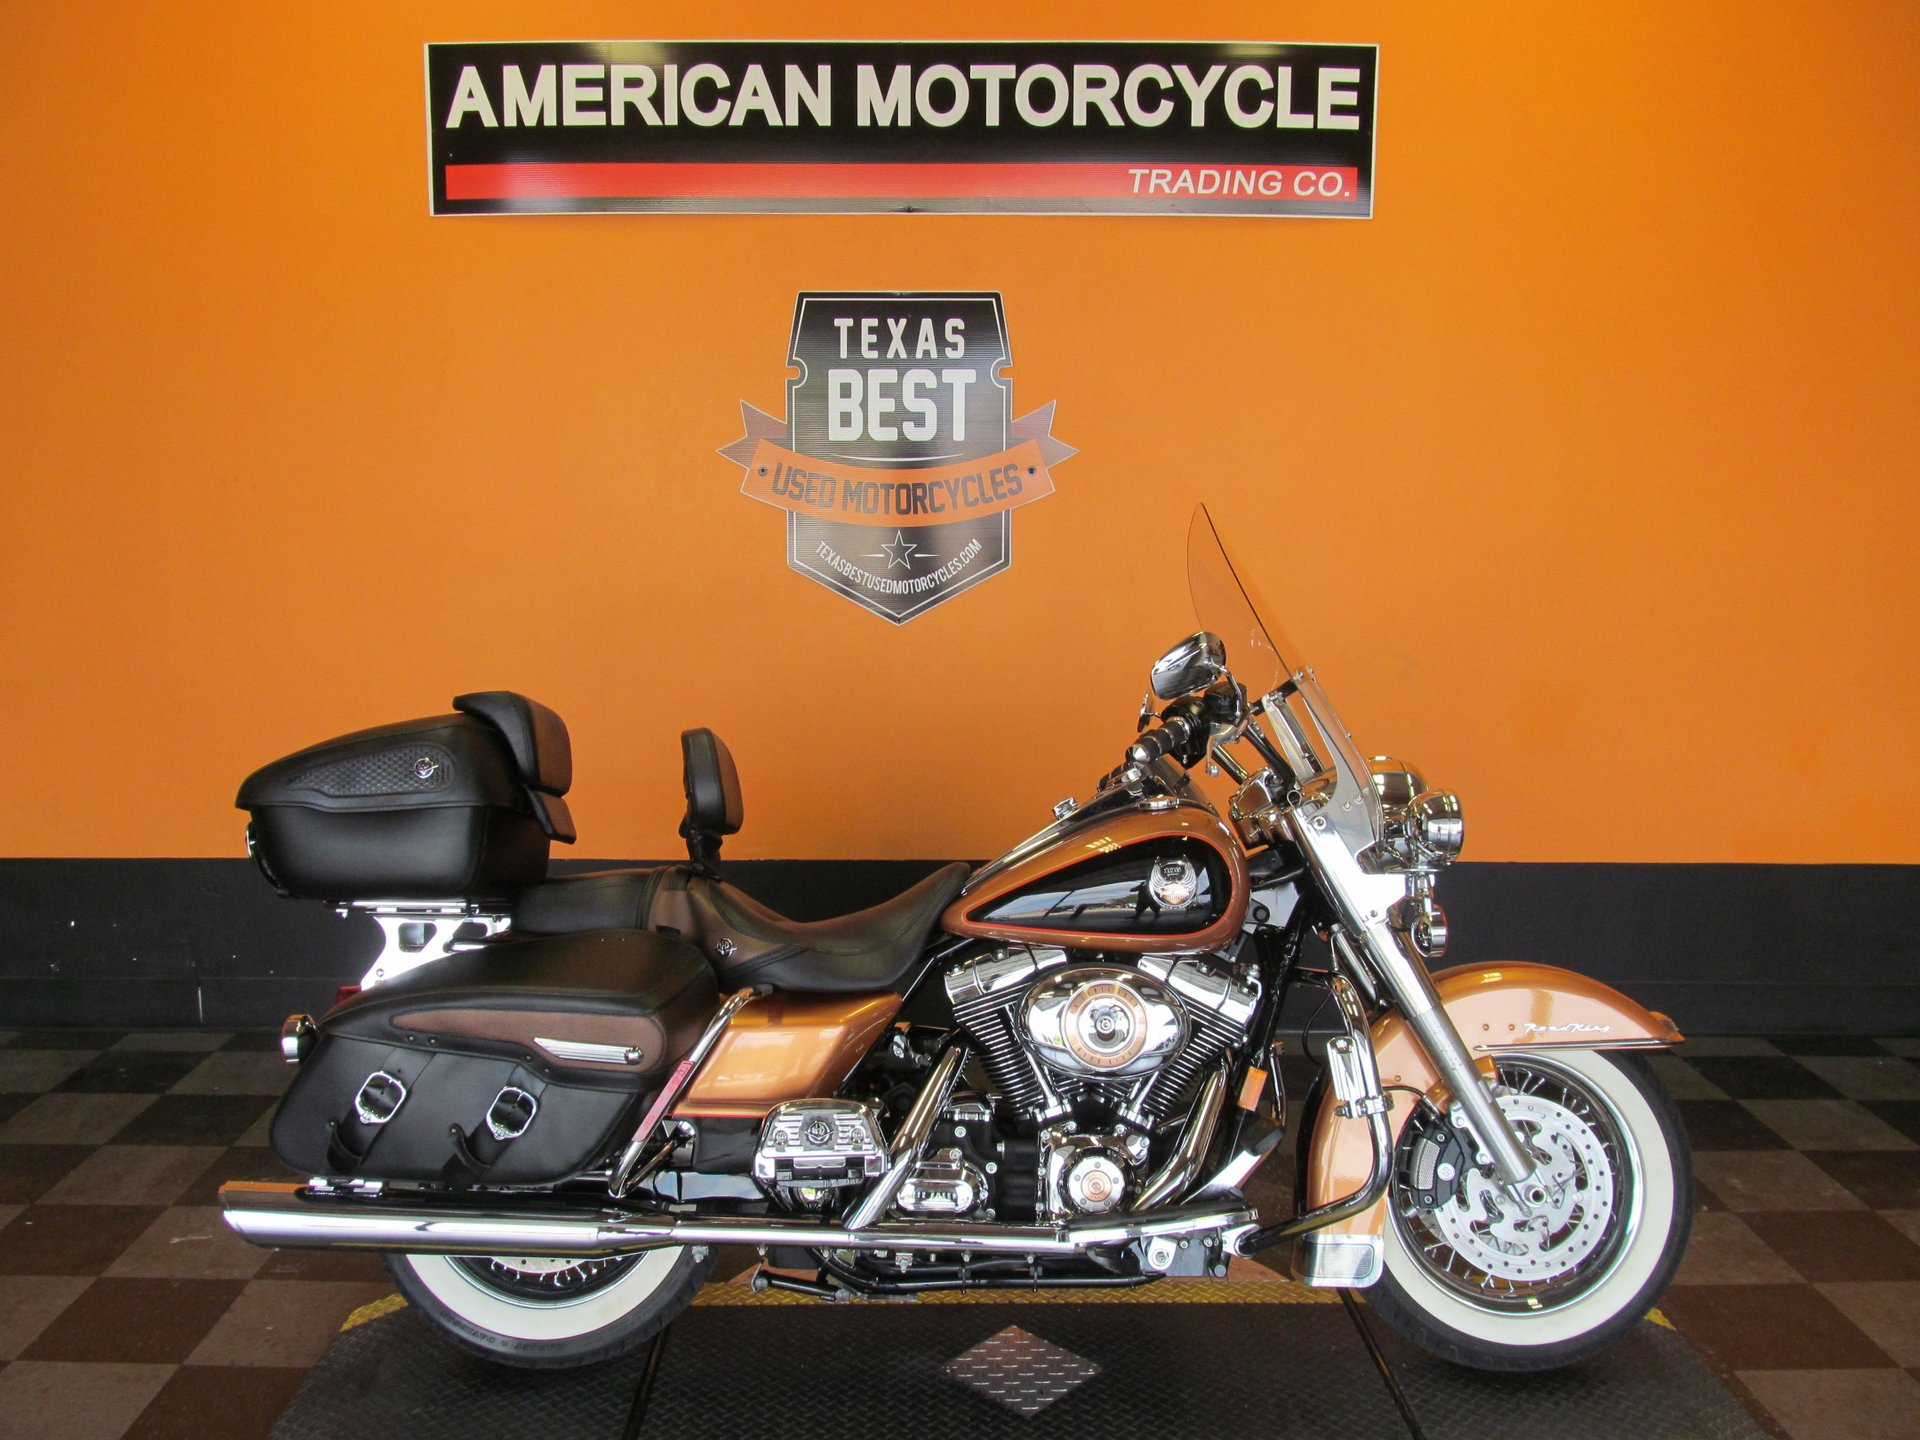 2008 harley davidson road king classic flhrc 105th anniversary